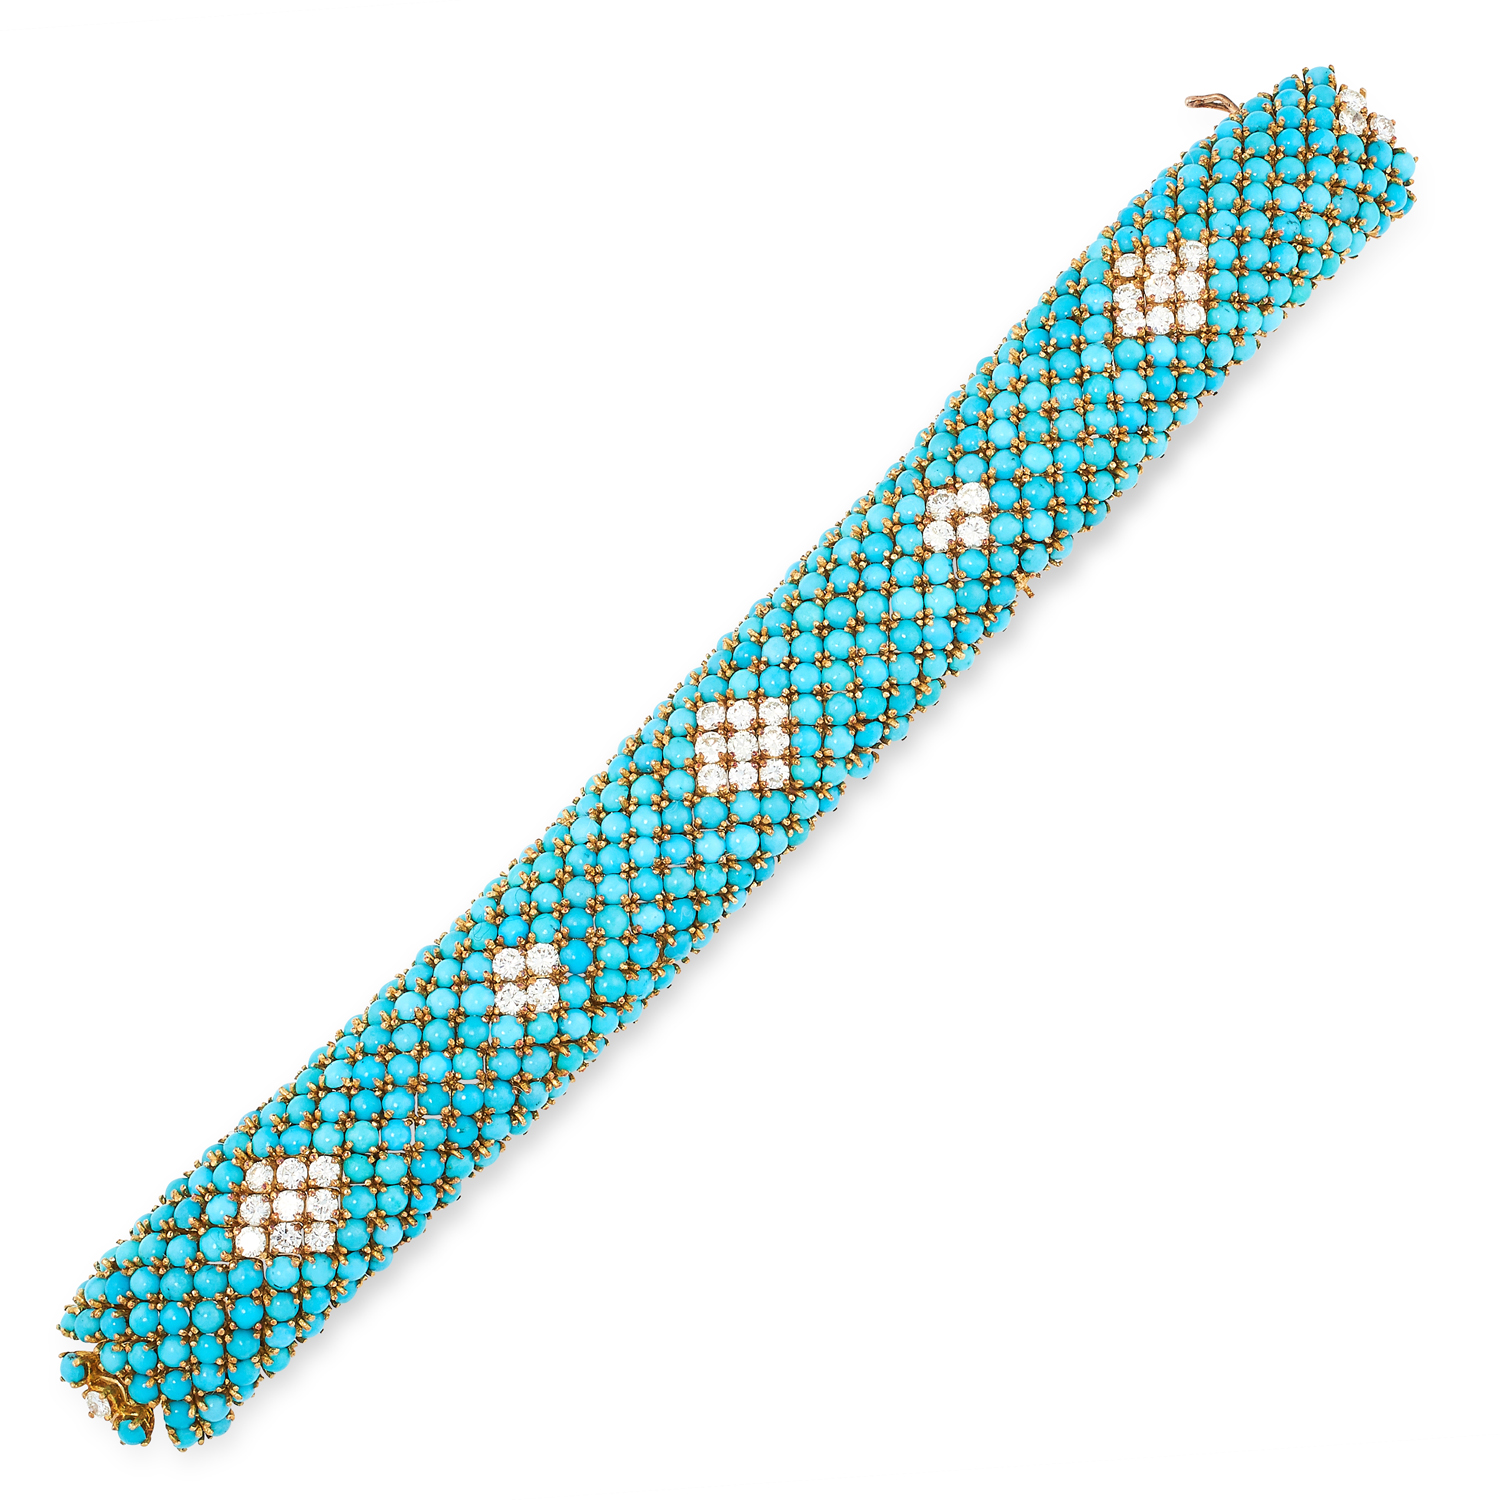 A VINTAGE TURQUOISE AND DIAMOND BRACELET, BEN ROSENFELD 1962 in 18ct yellow gold, jewelled all